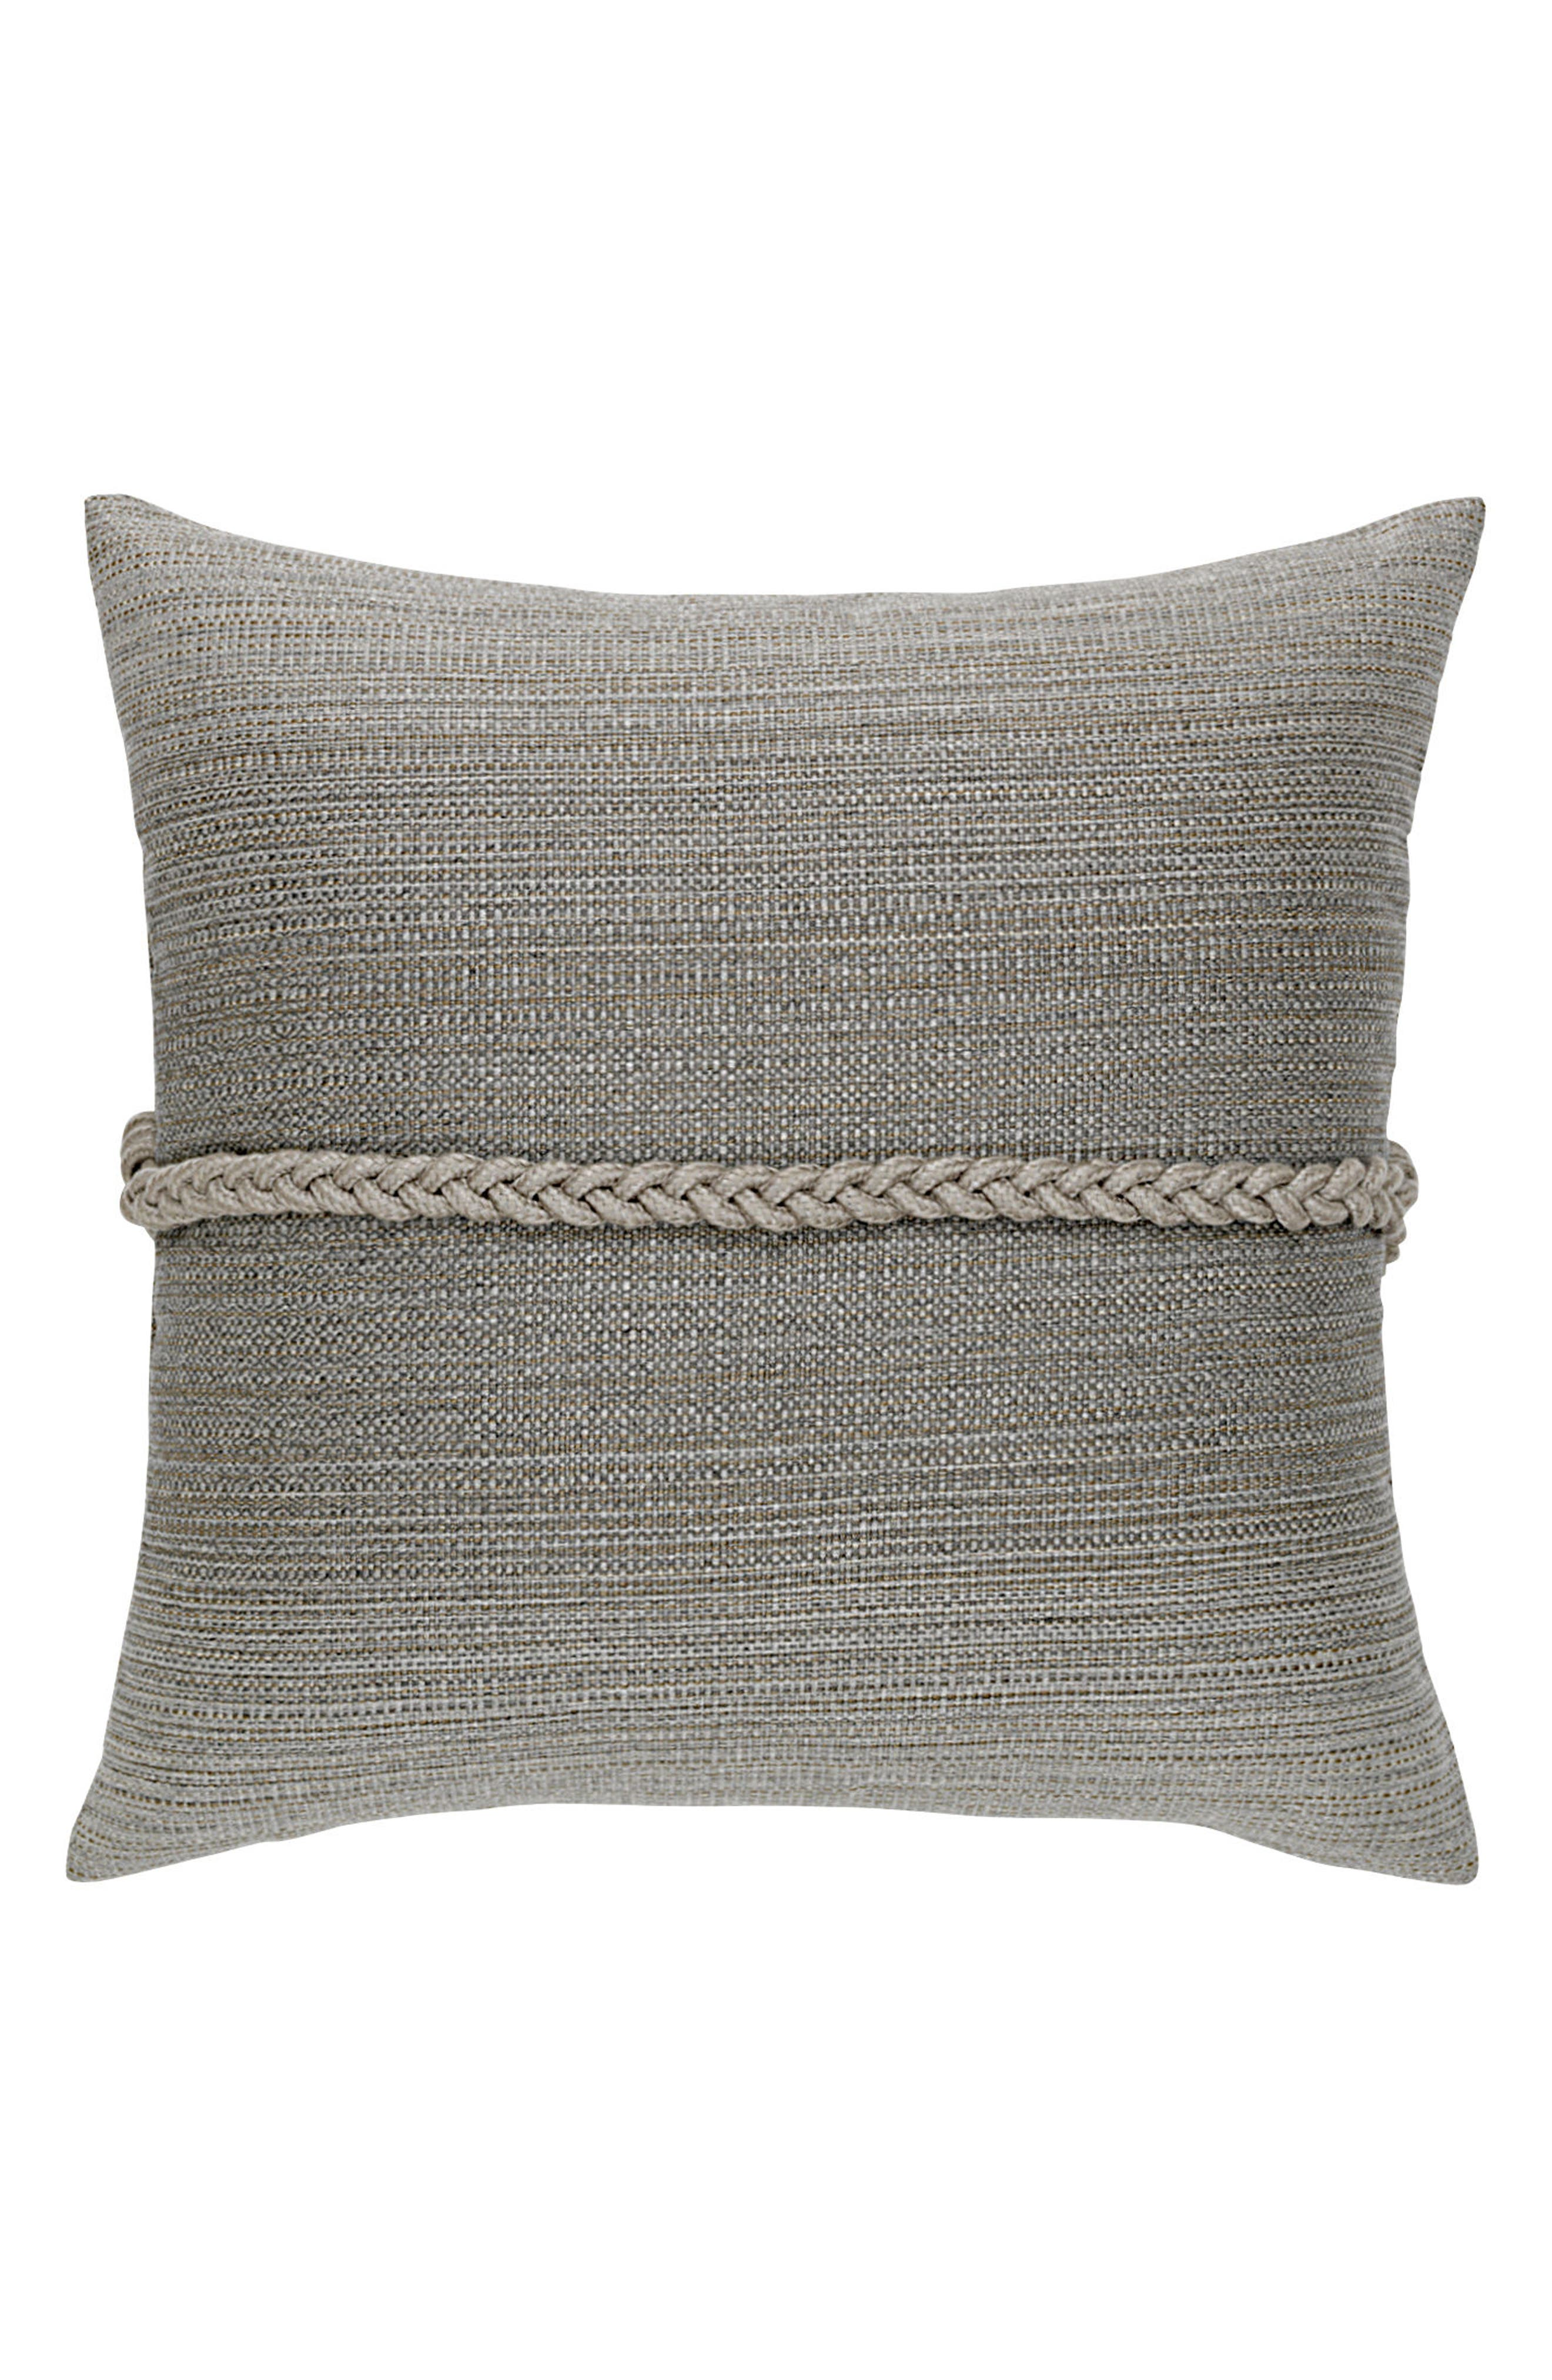 Cadet Frogs Clasp Indoor/Outdoor Accent Pillow,                             Alternate thumbnail 2, color,                             020